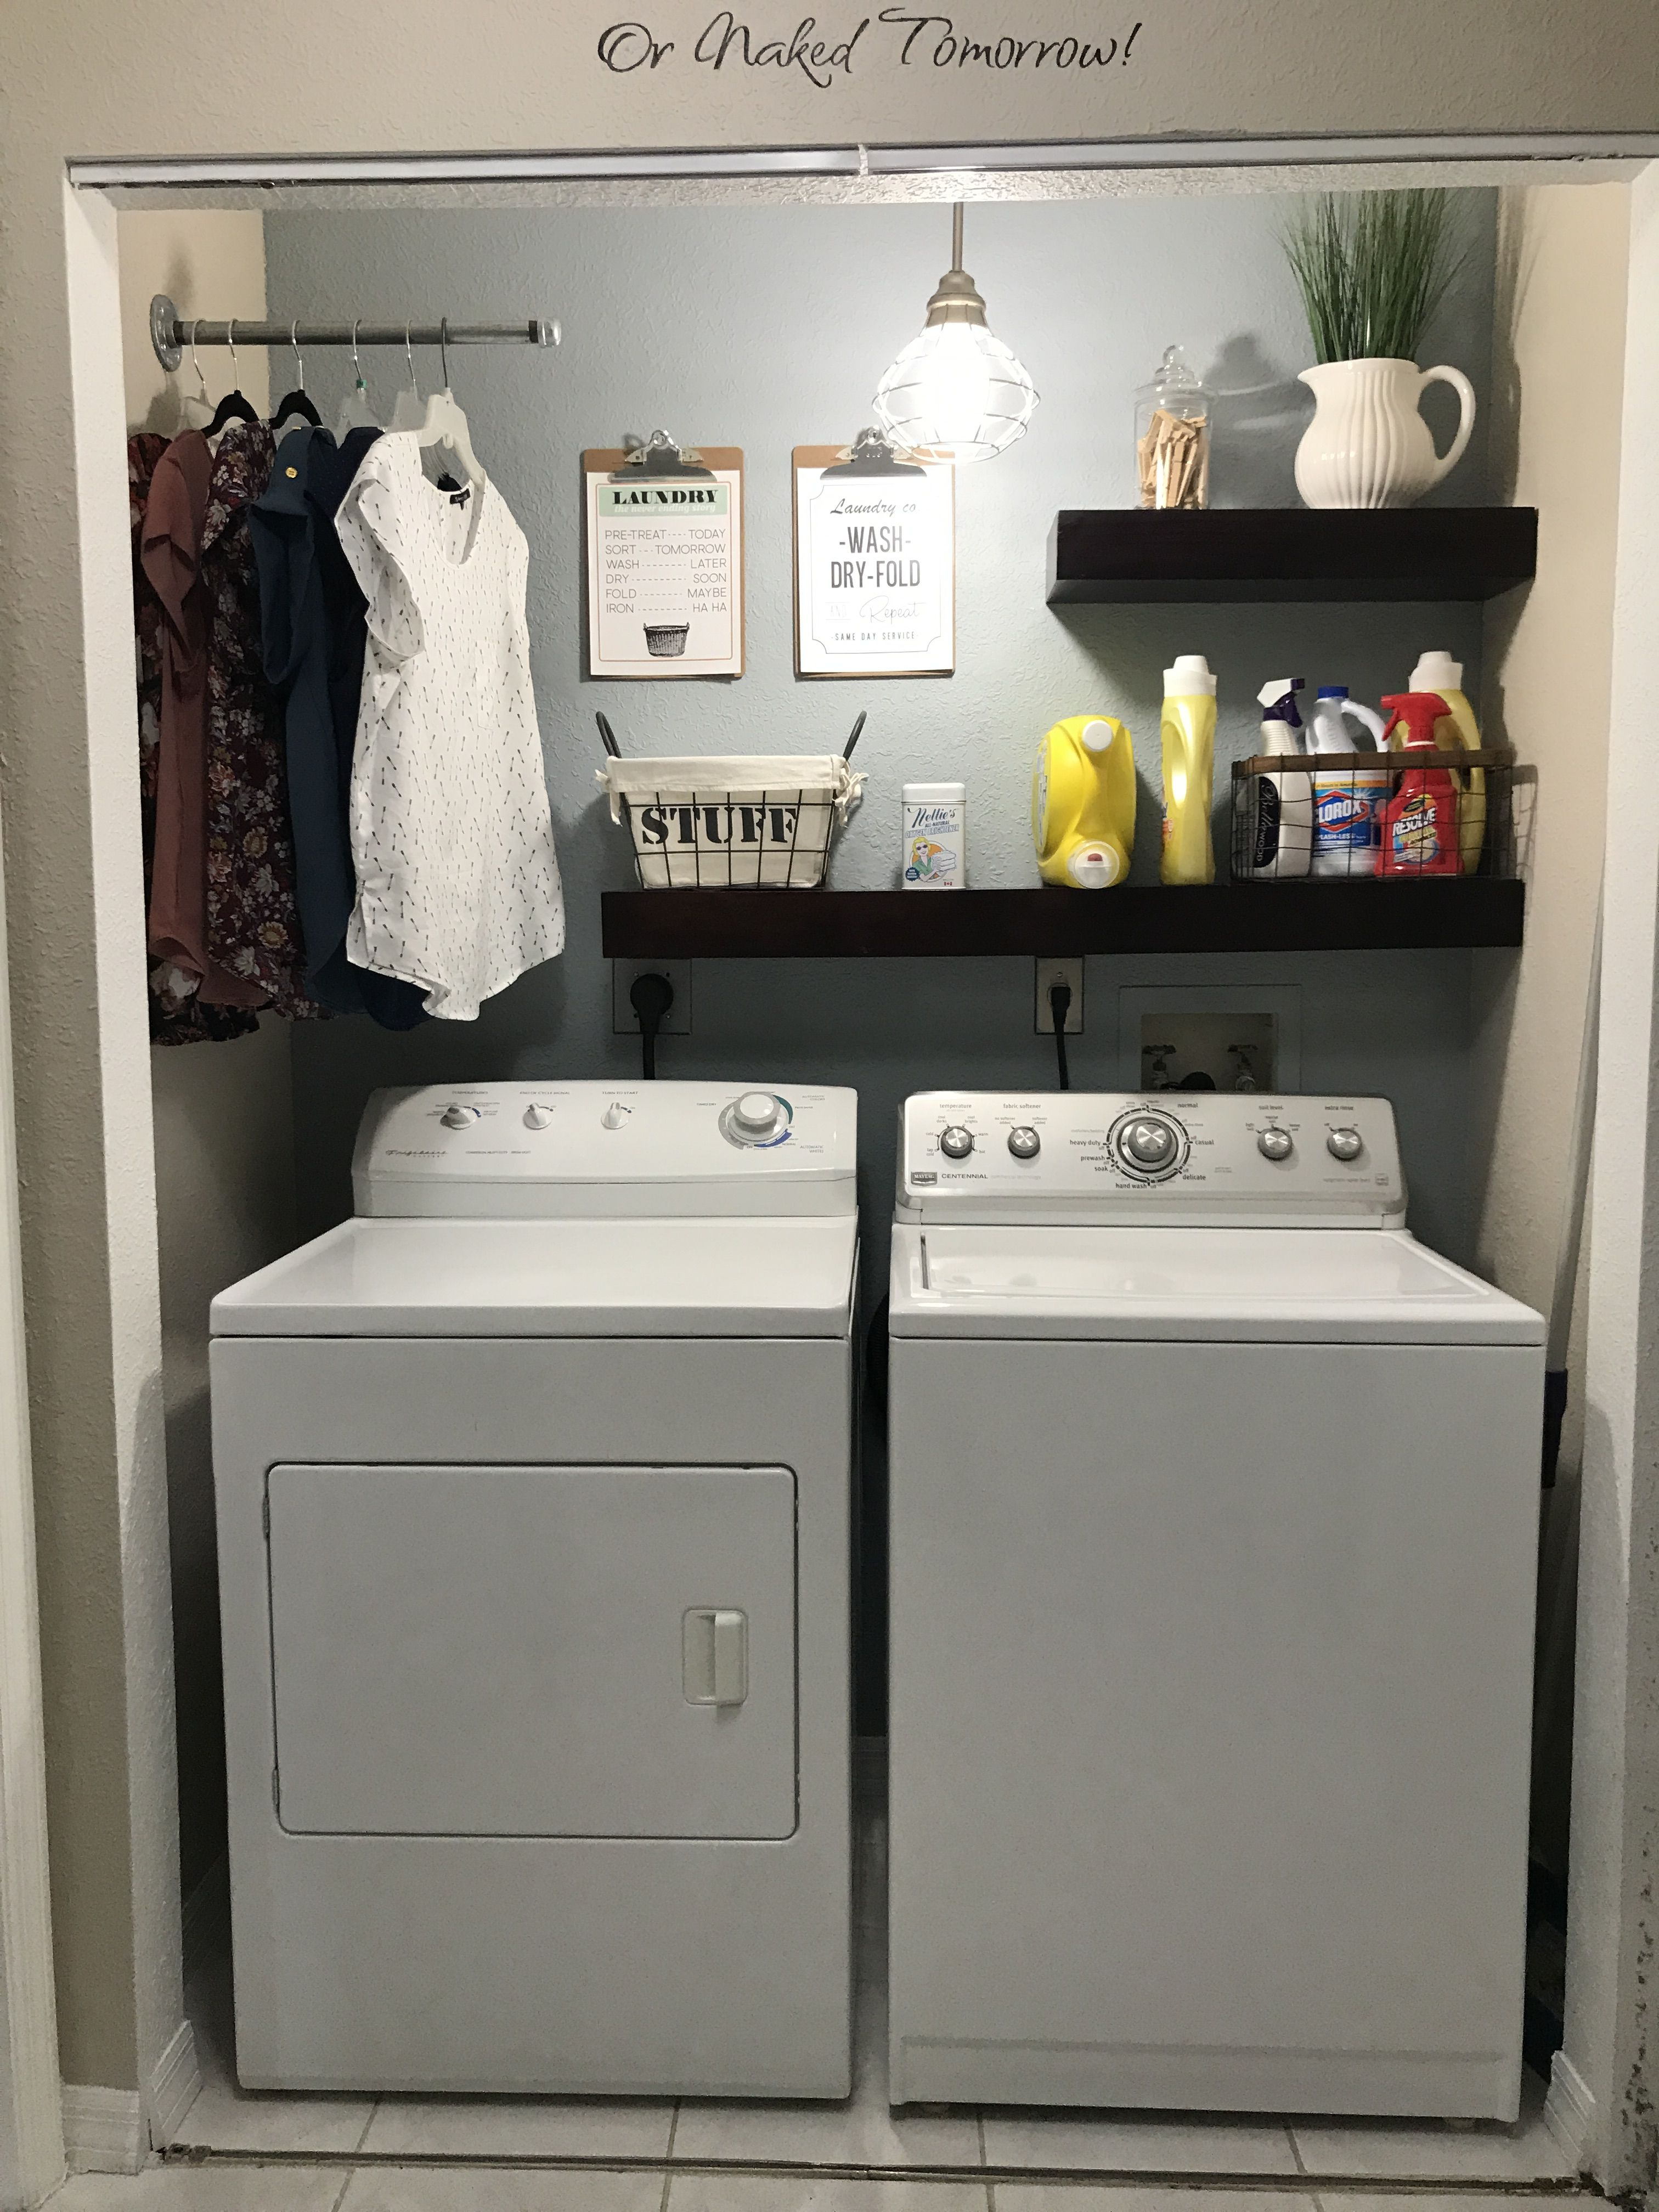 Laundry Closet Makeover In 2019 Laundry Closet Makeover